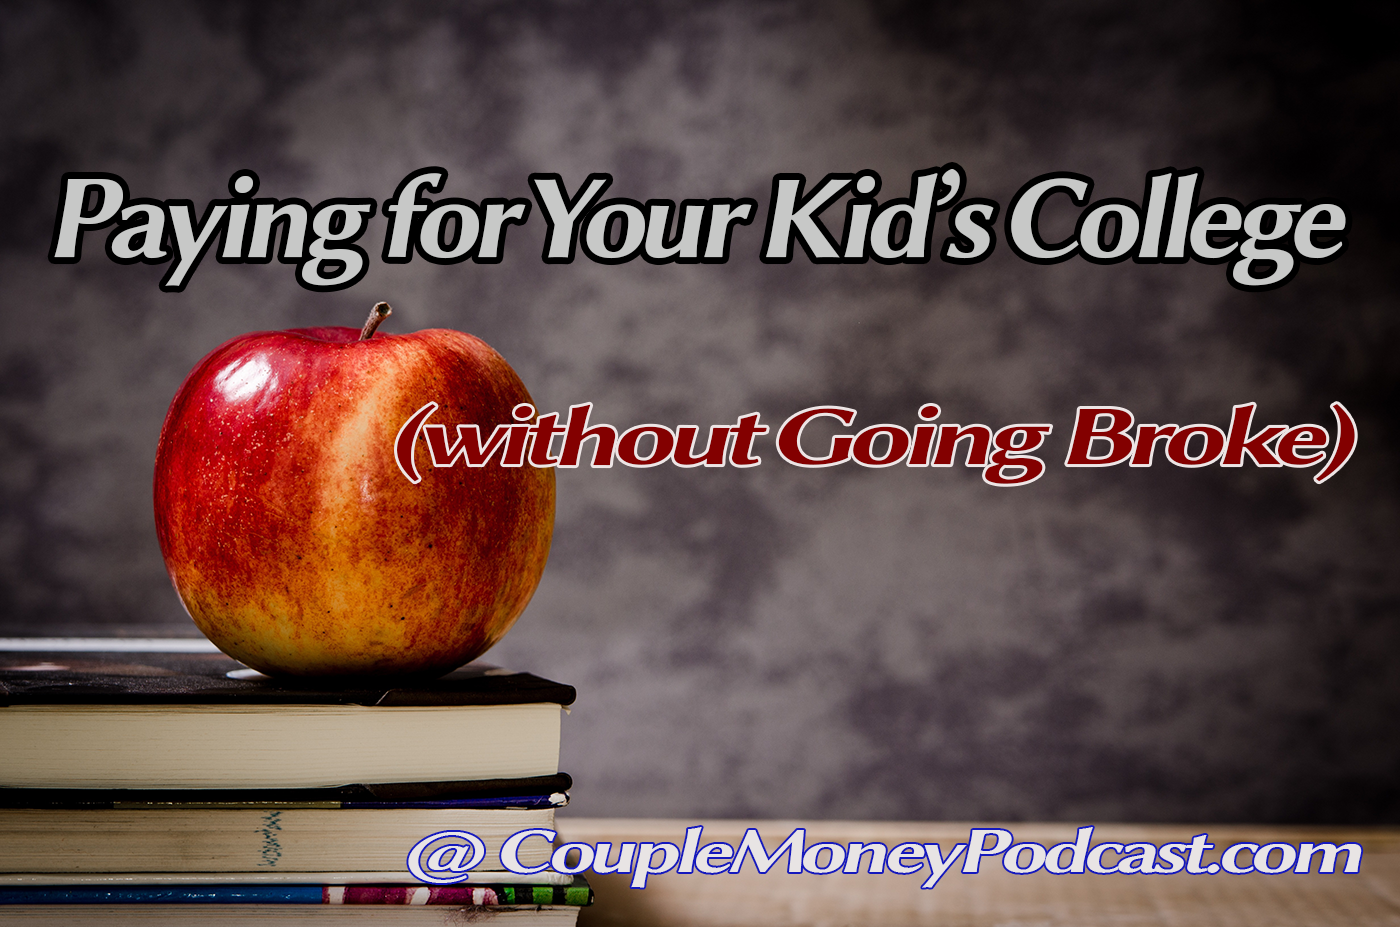 Learn How To Help Your Kids Go To College Without Going